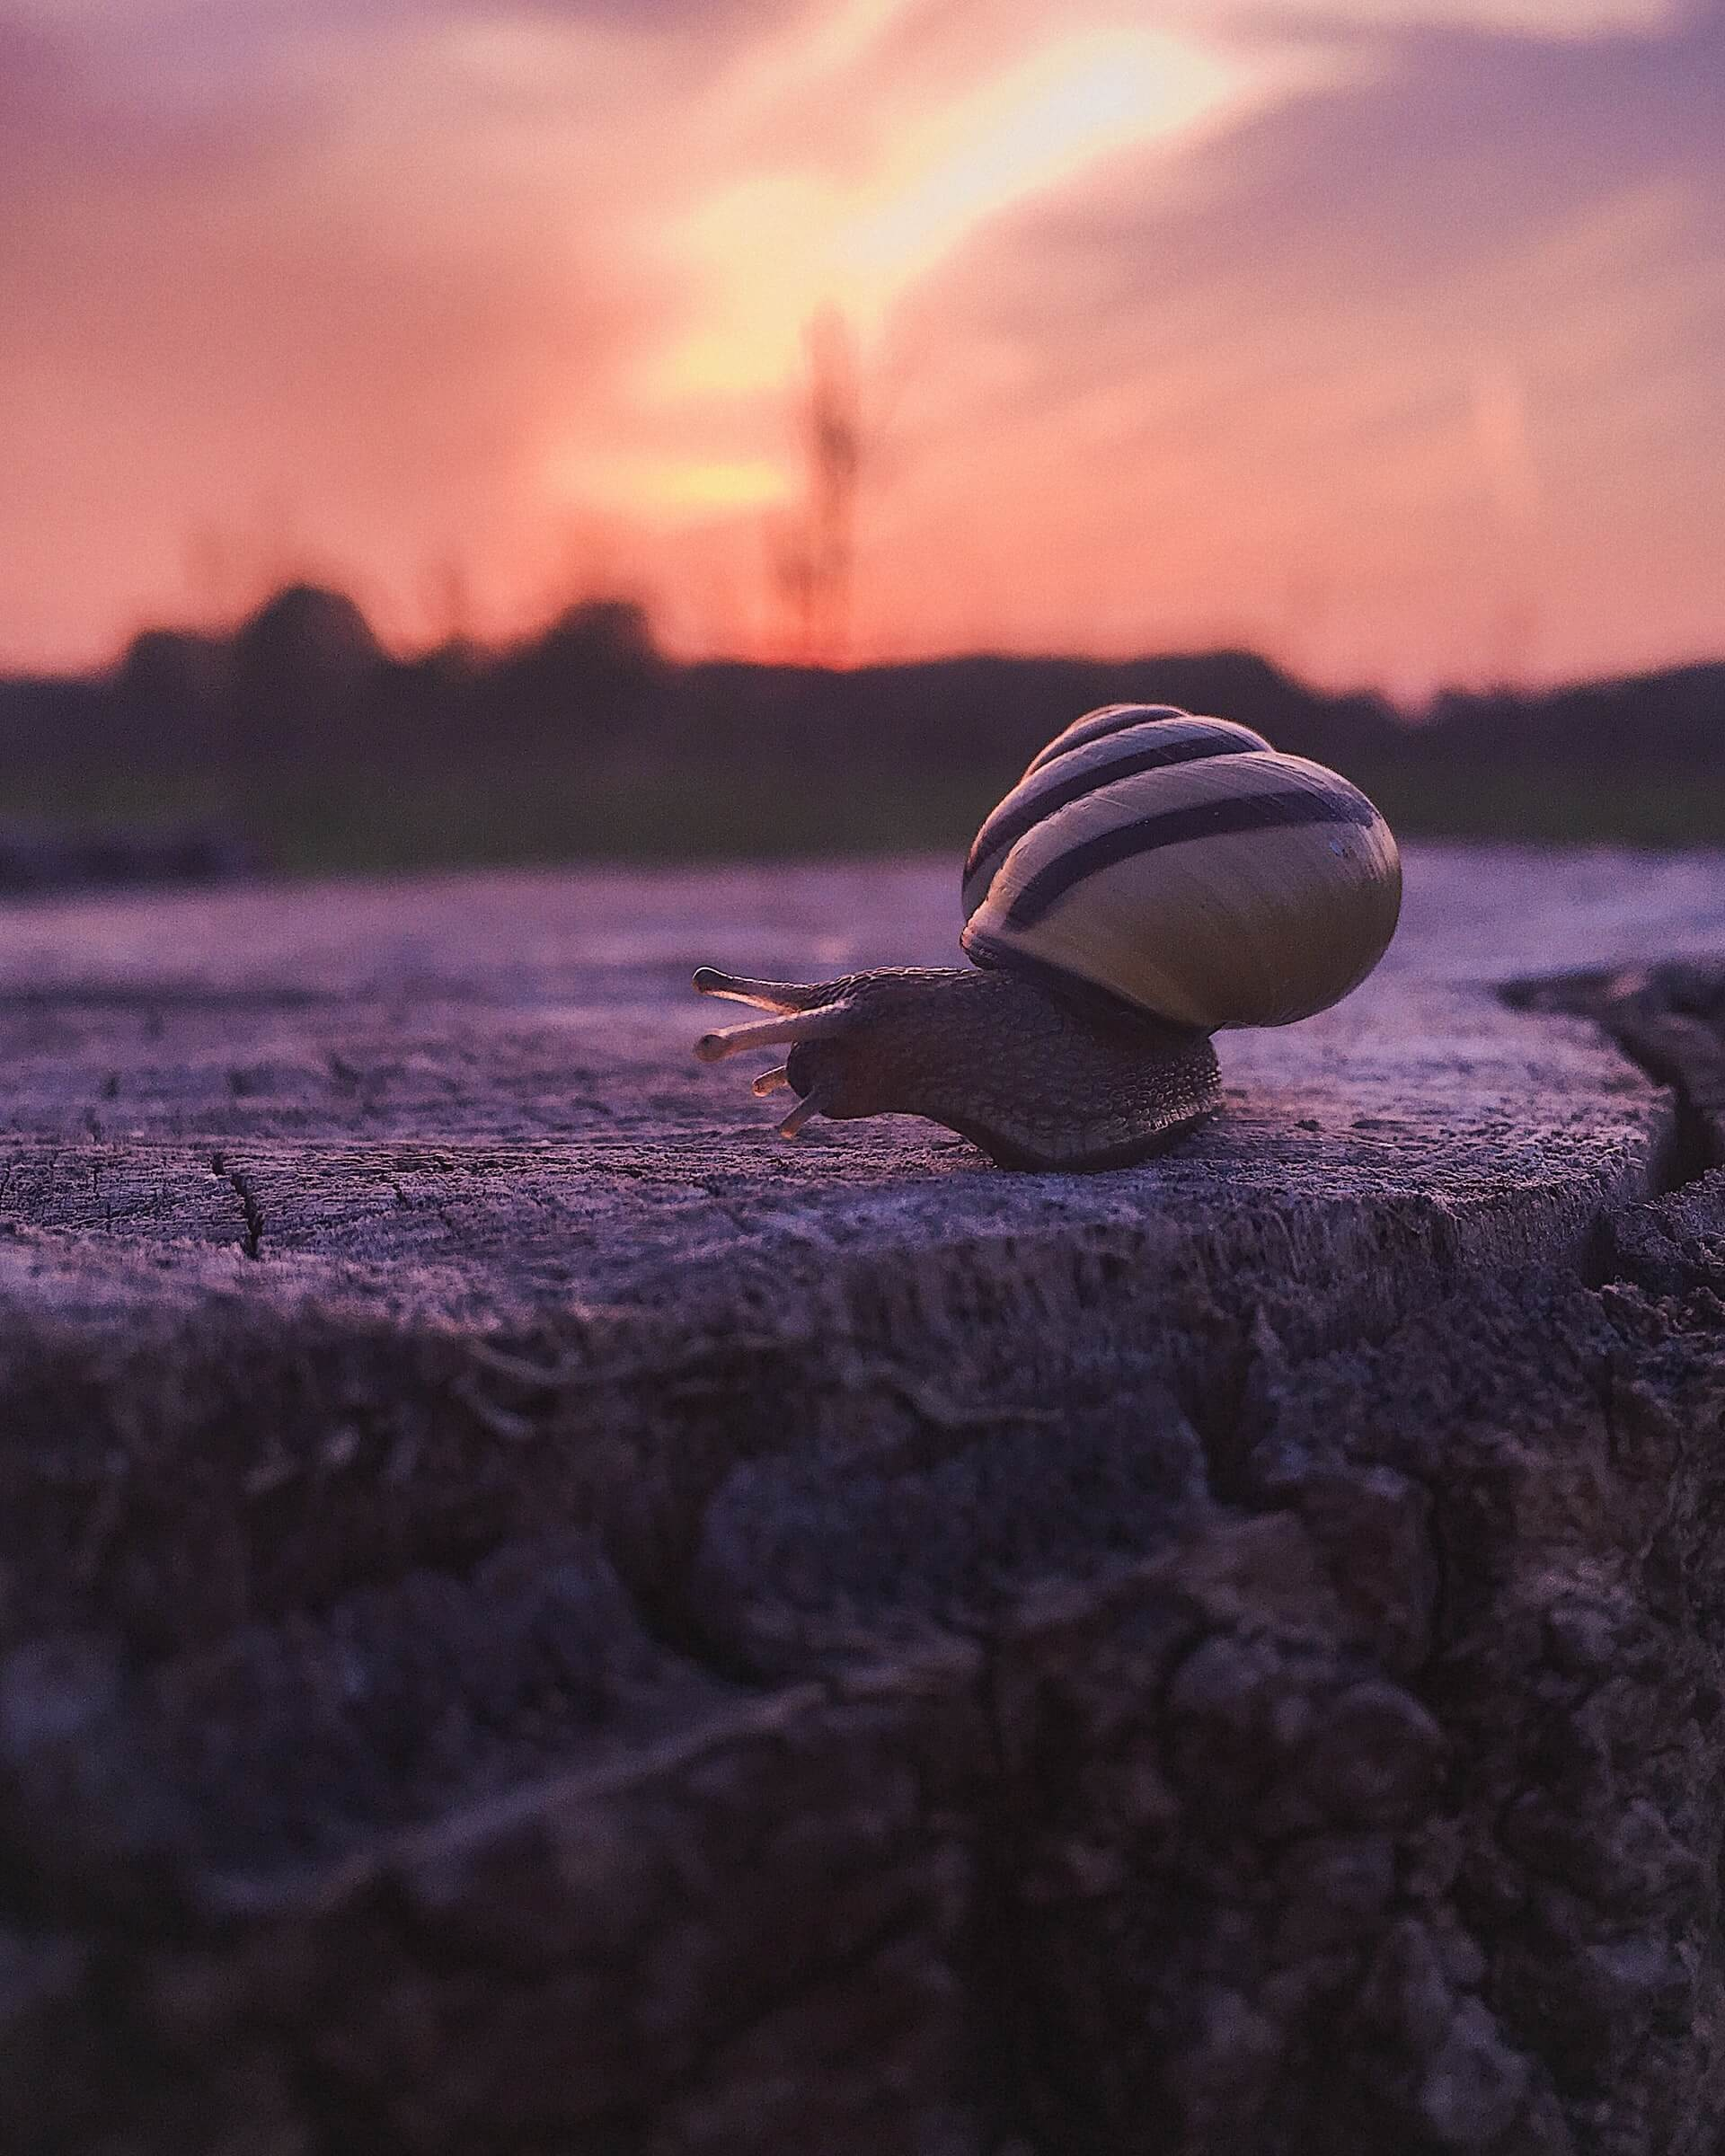 A snail and sunset representing the pace of life needed to combat travel fatigue